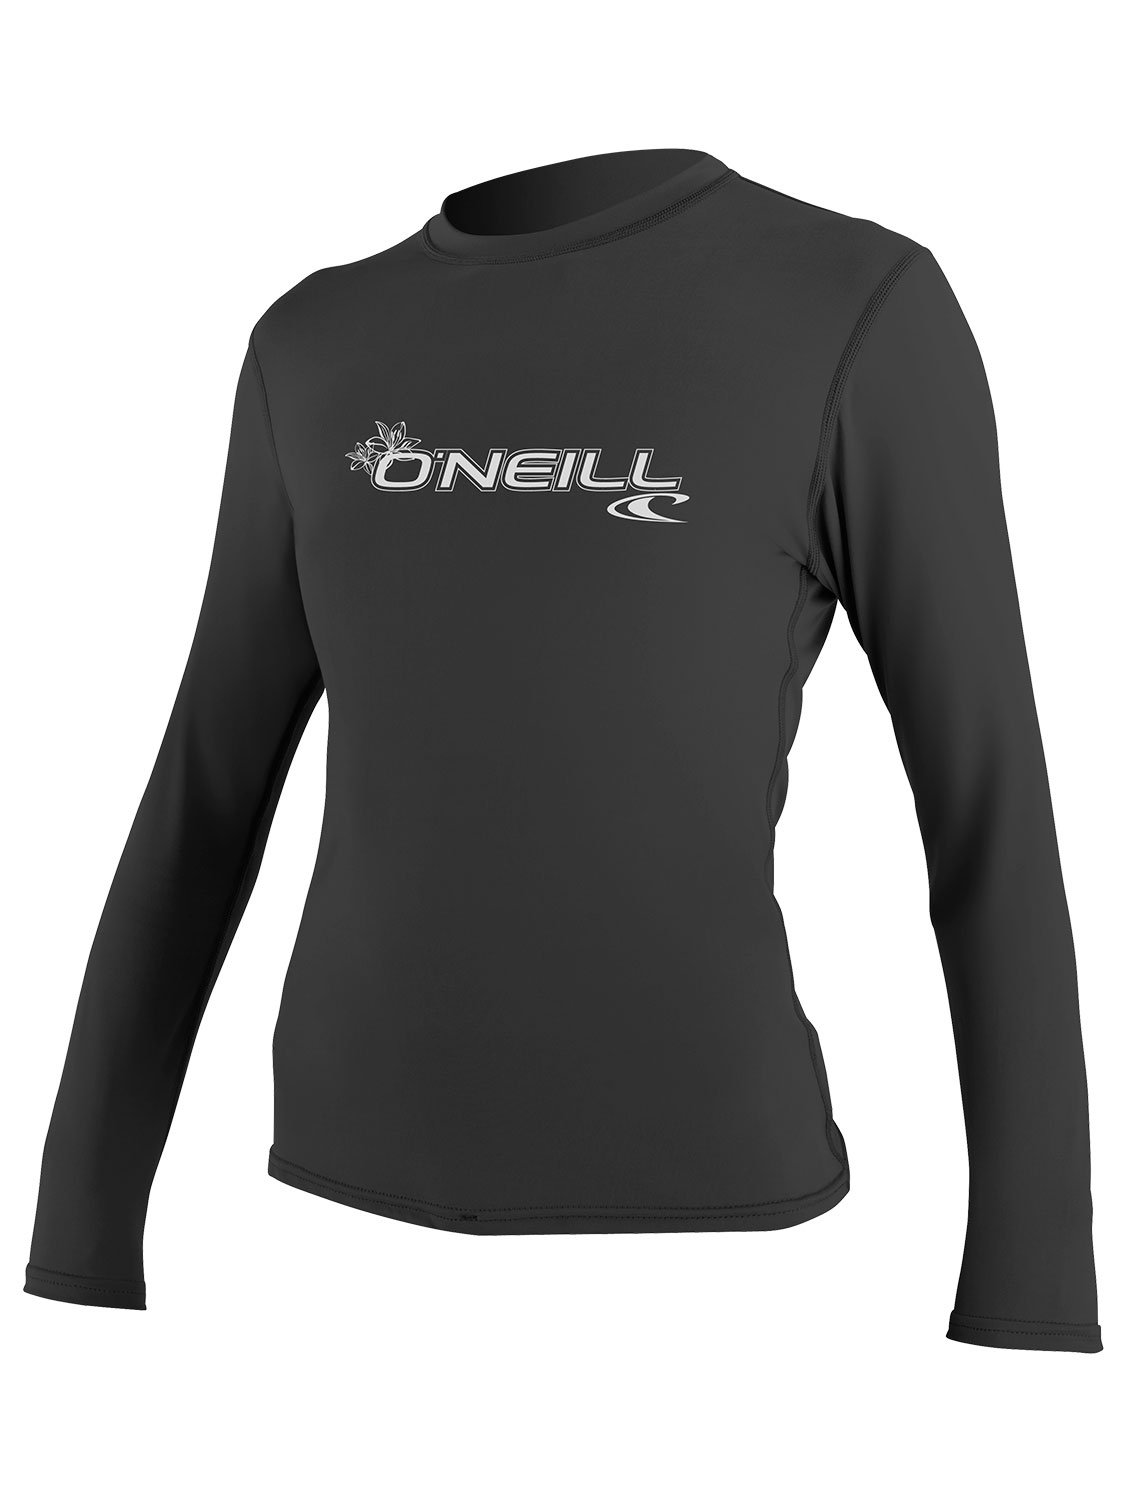 O'Neill Women's Basic Skins Upf 50+ Long Sleeve Sun Shirt, Black, Large by O'Neill Wetsuits